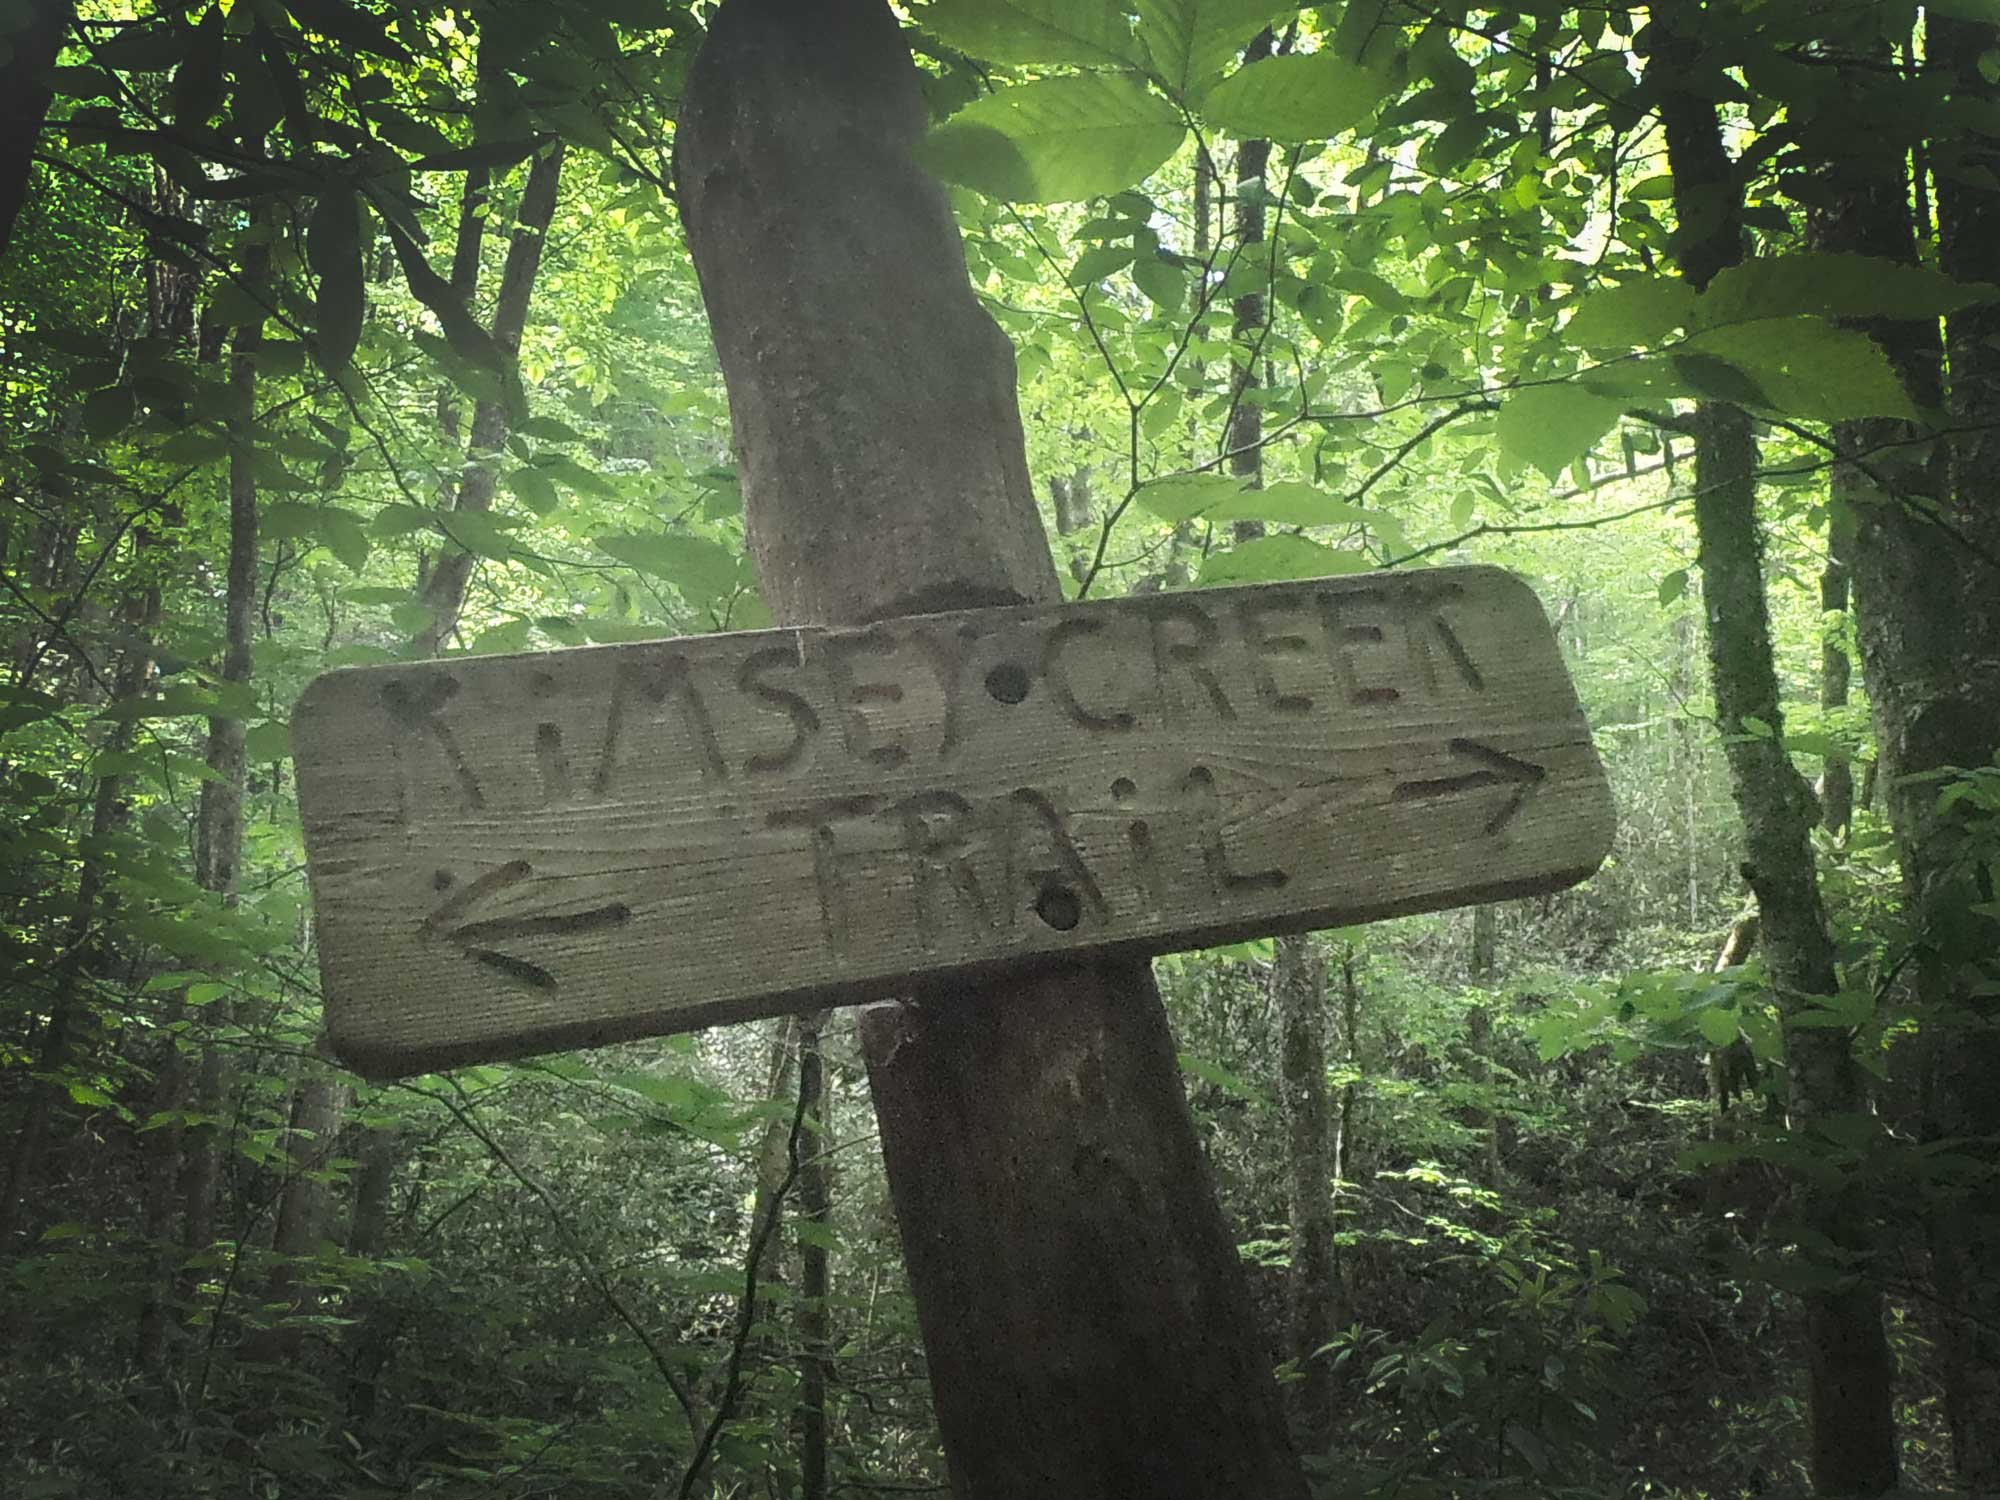 Wooden trail sign for Kimsey Creek Trail